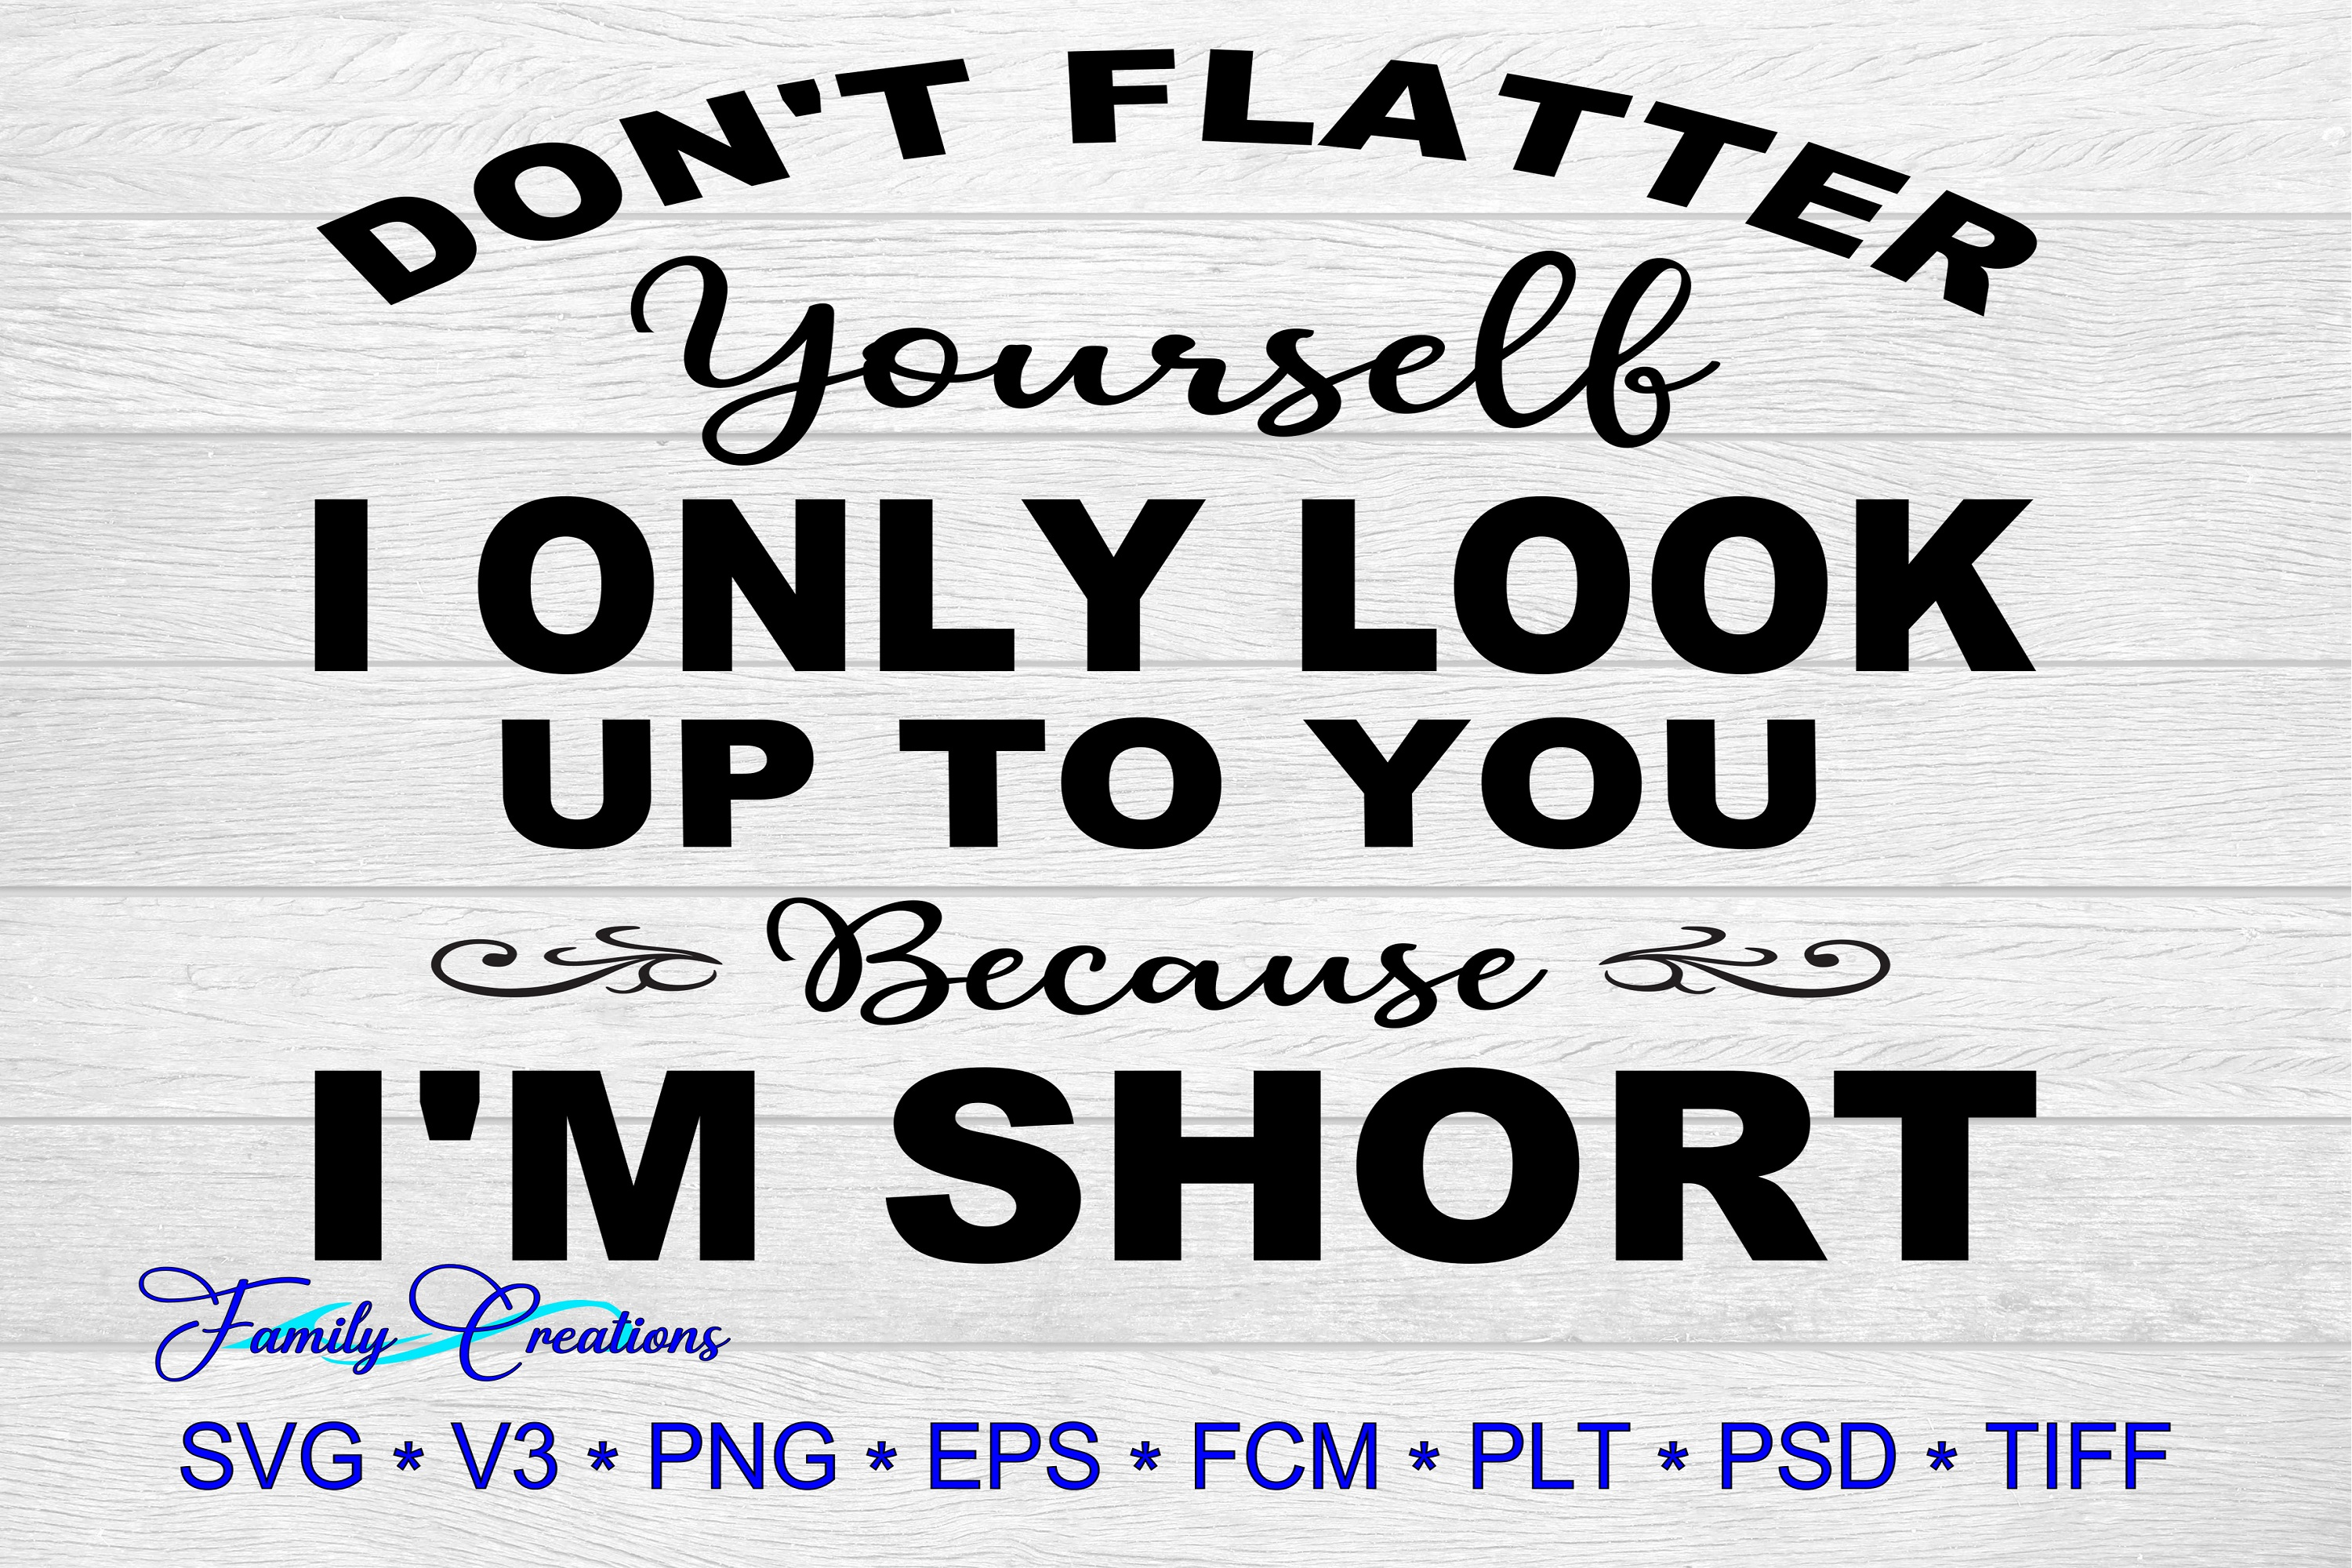 Download Free Don T Flatter Youself Graphic By Family Creations Creative Fabrica for Cricut Explore, Silhouette and other cutting machines.